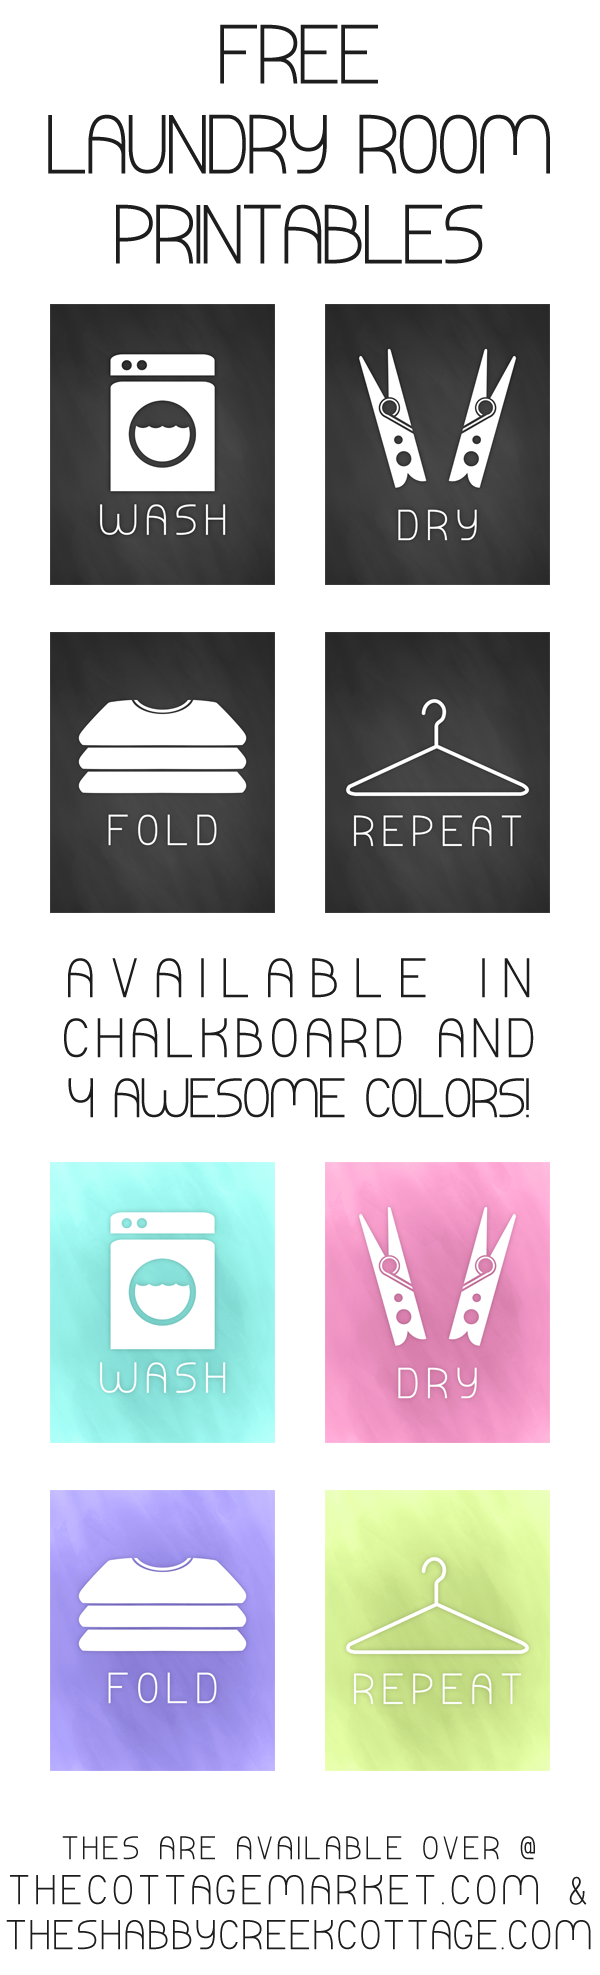 9 Images of Chalkboard Laundry Room Printables Free